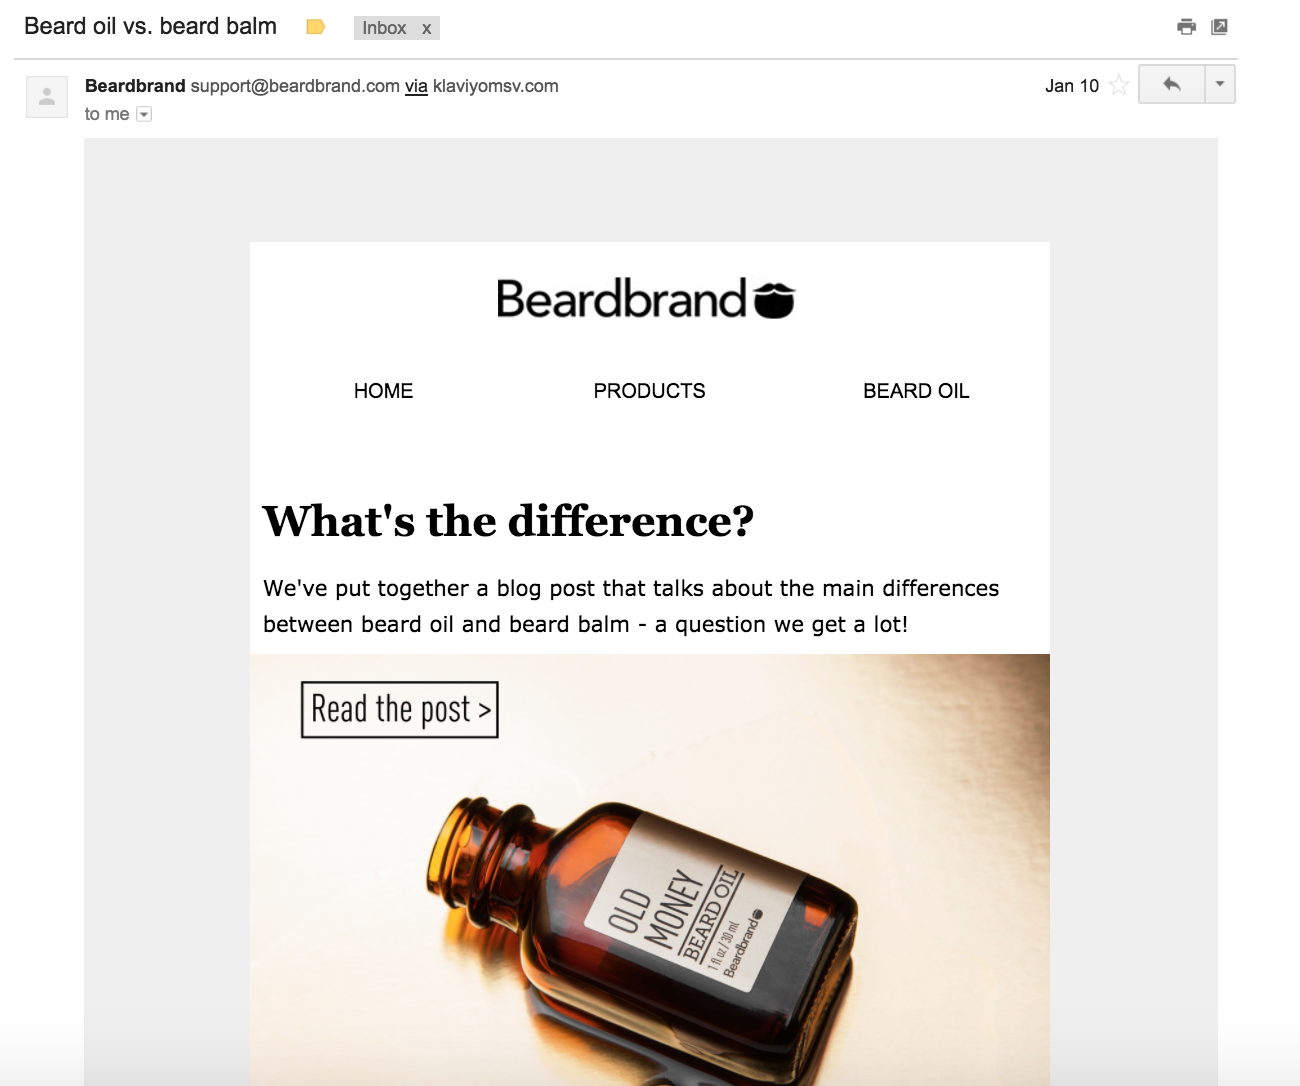 An education email sent by Beardbrand